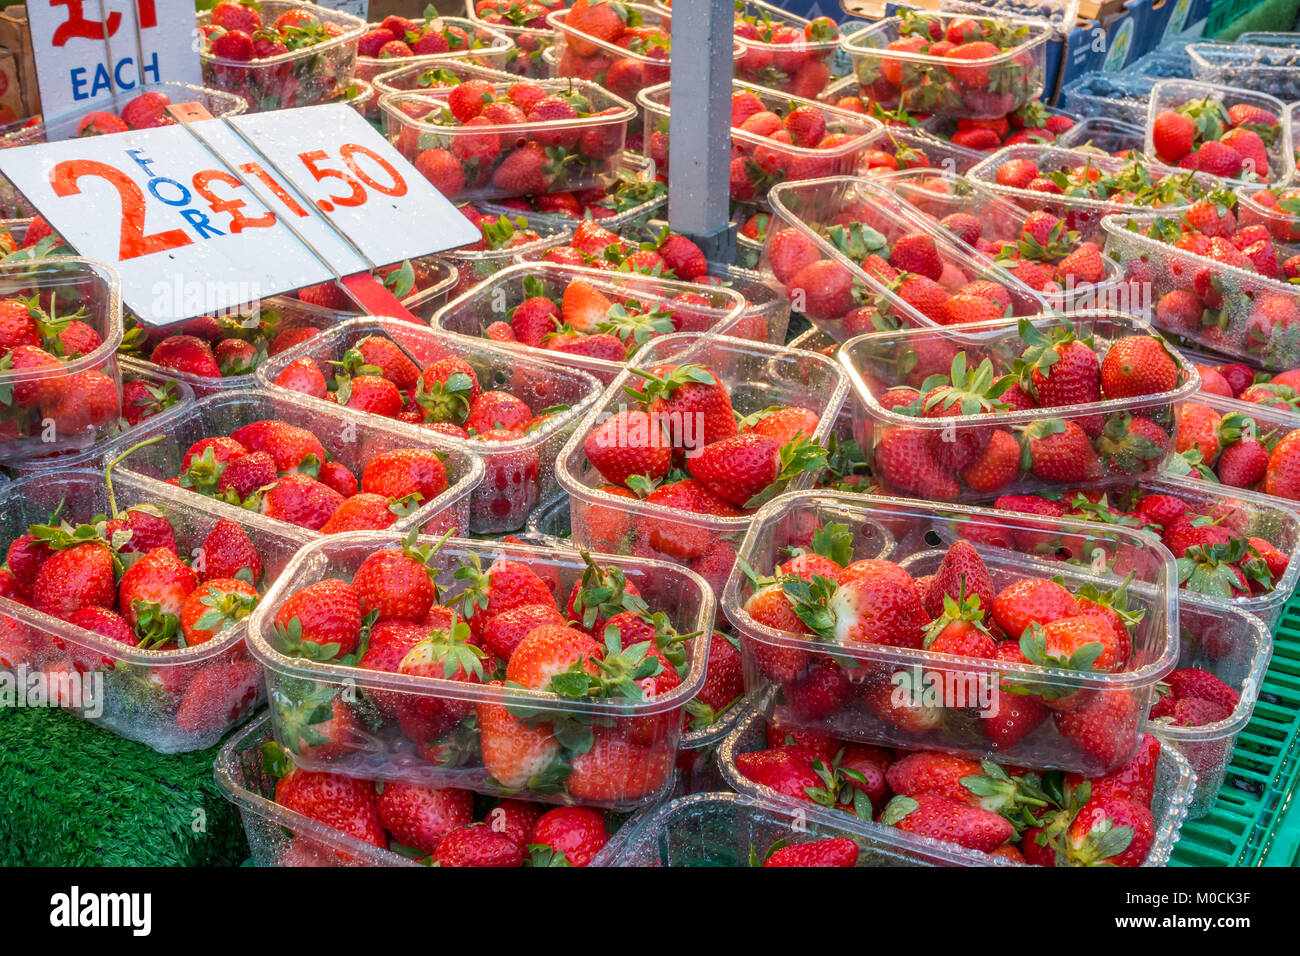 punnets-of-strawberries-on-a-market-stall-they-are-wet-because-it-M0CK3F.jpg